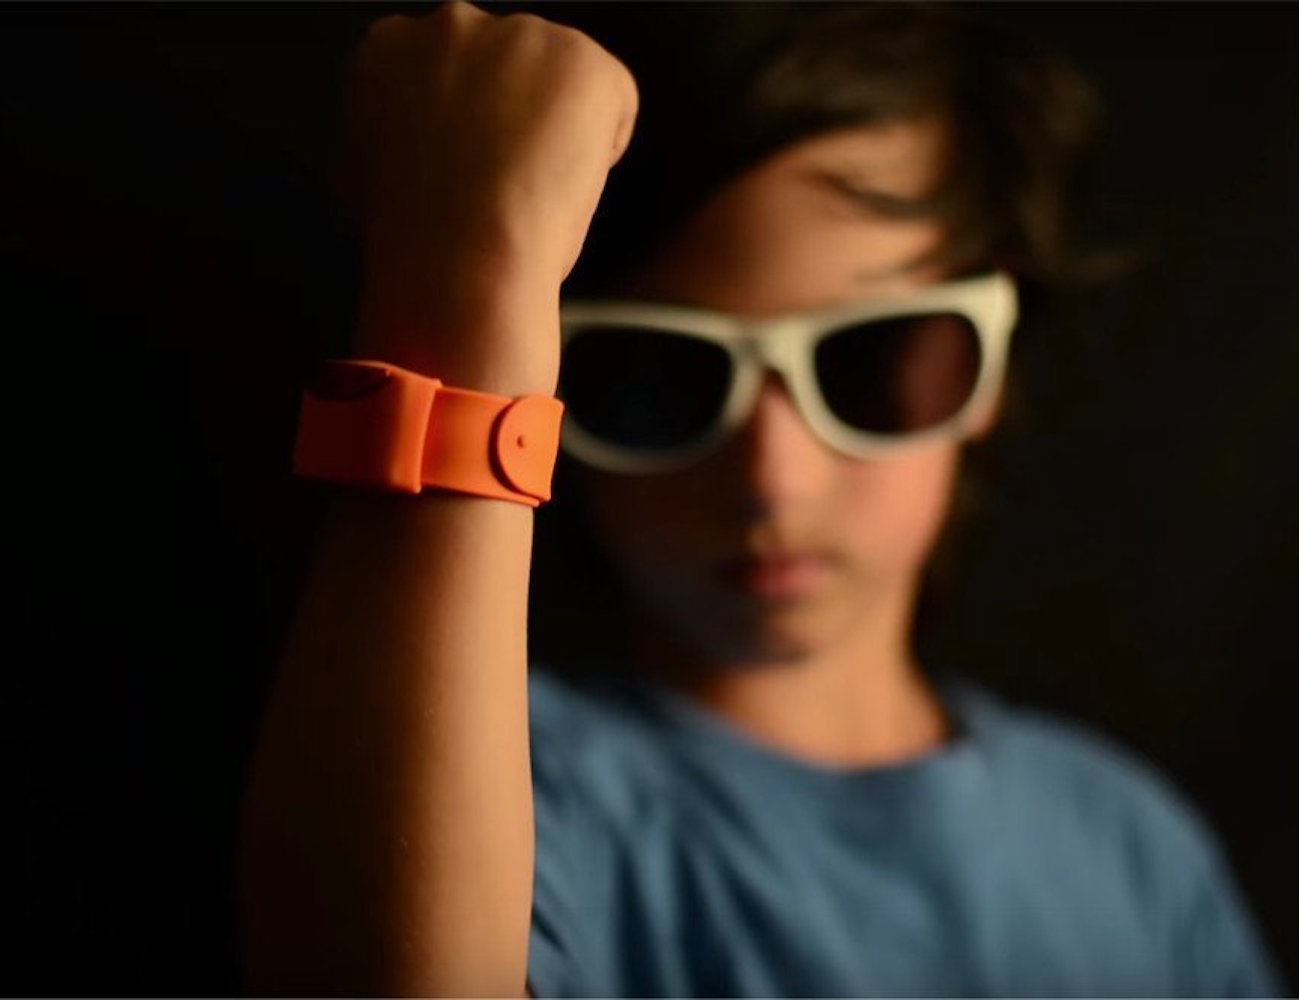 Moff Band – The Wearable Smart Toy » Gadget Flow